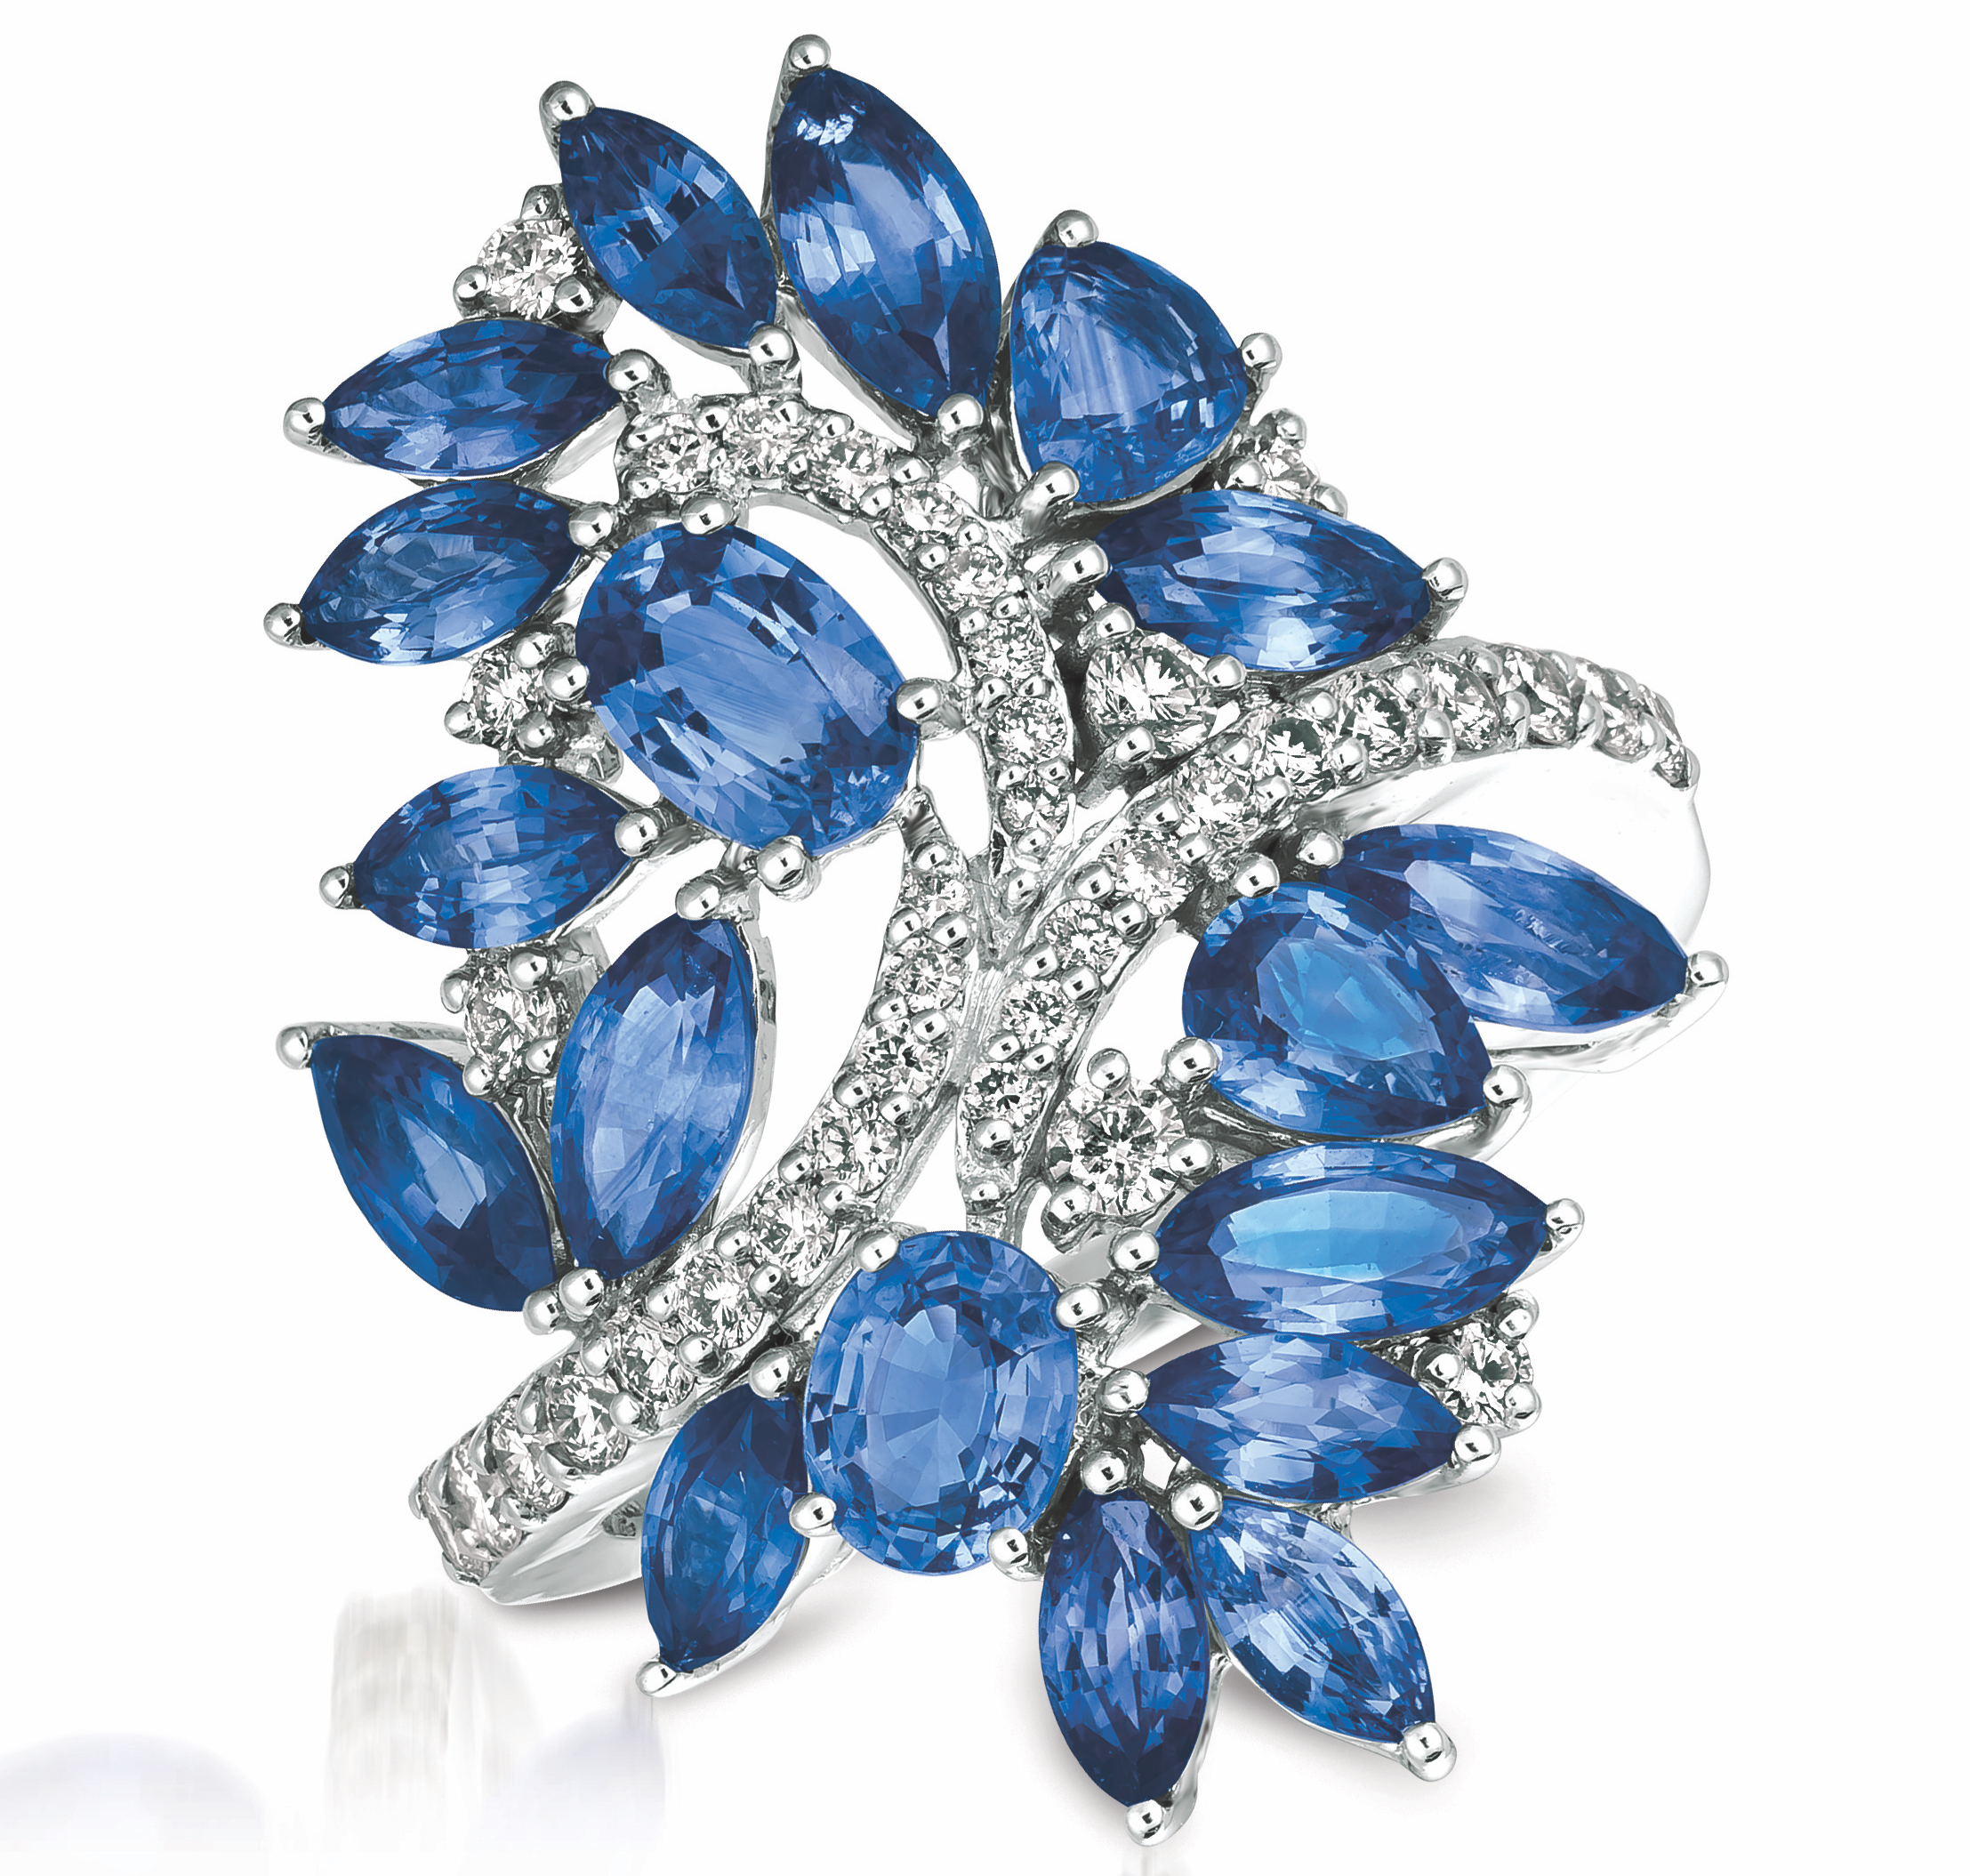 Le Vian Cornflower Ceylon Sapphire ring | JCK On Your Market